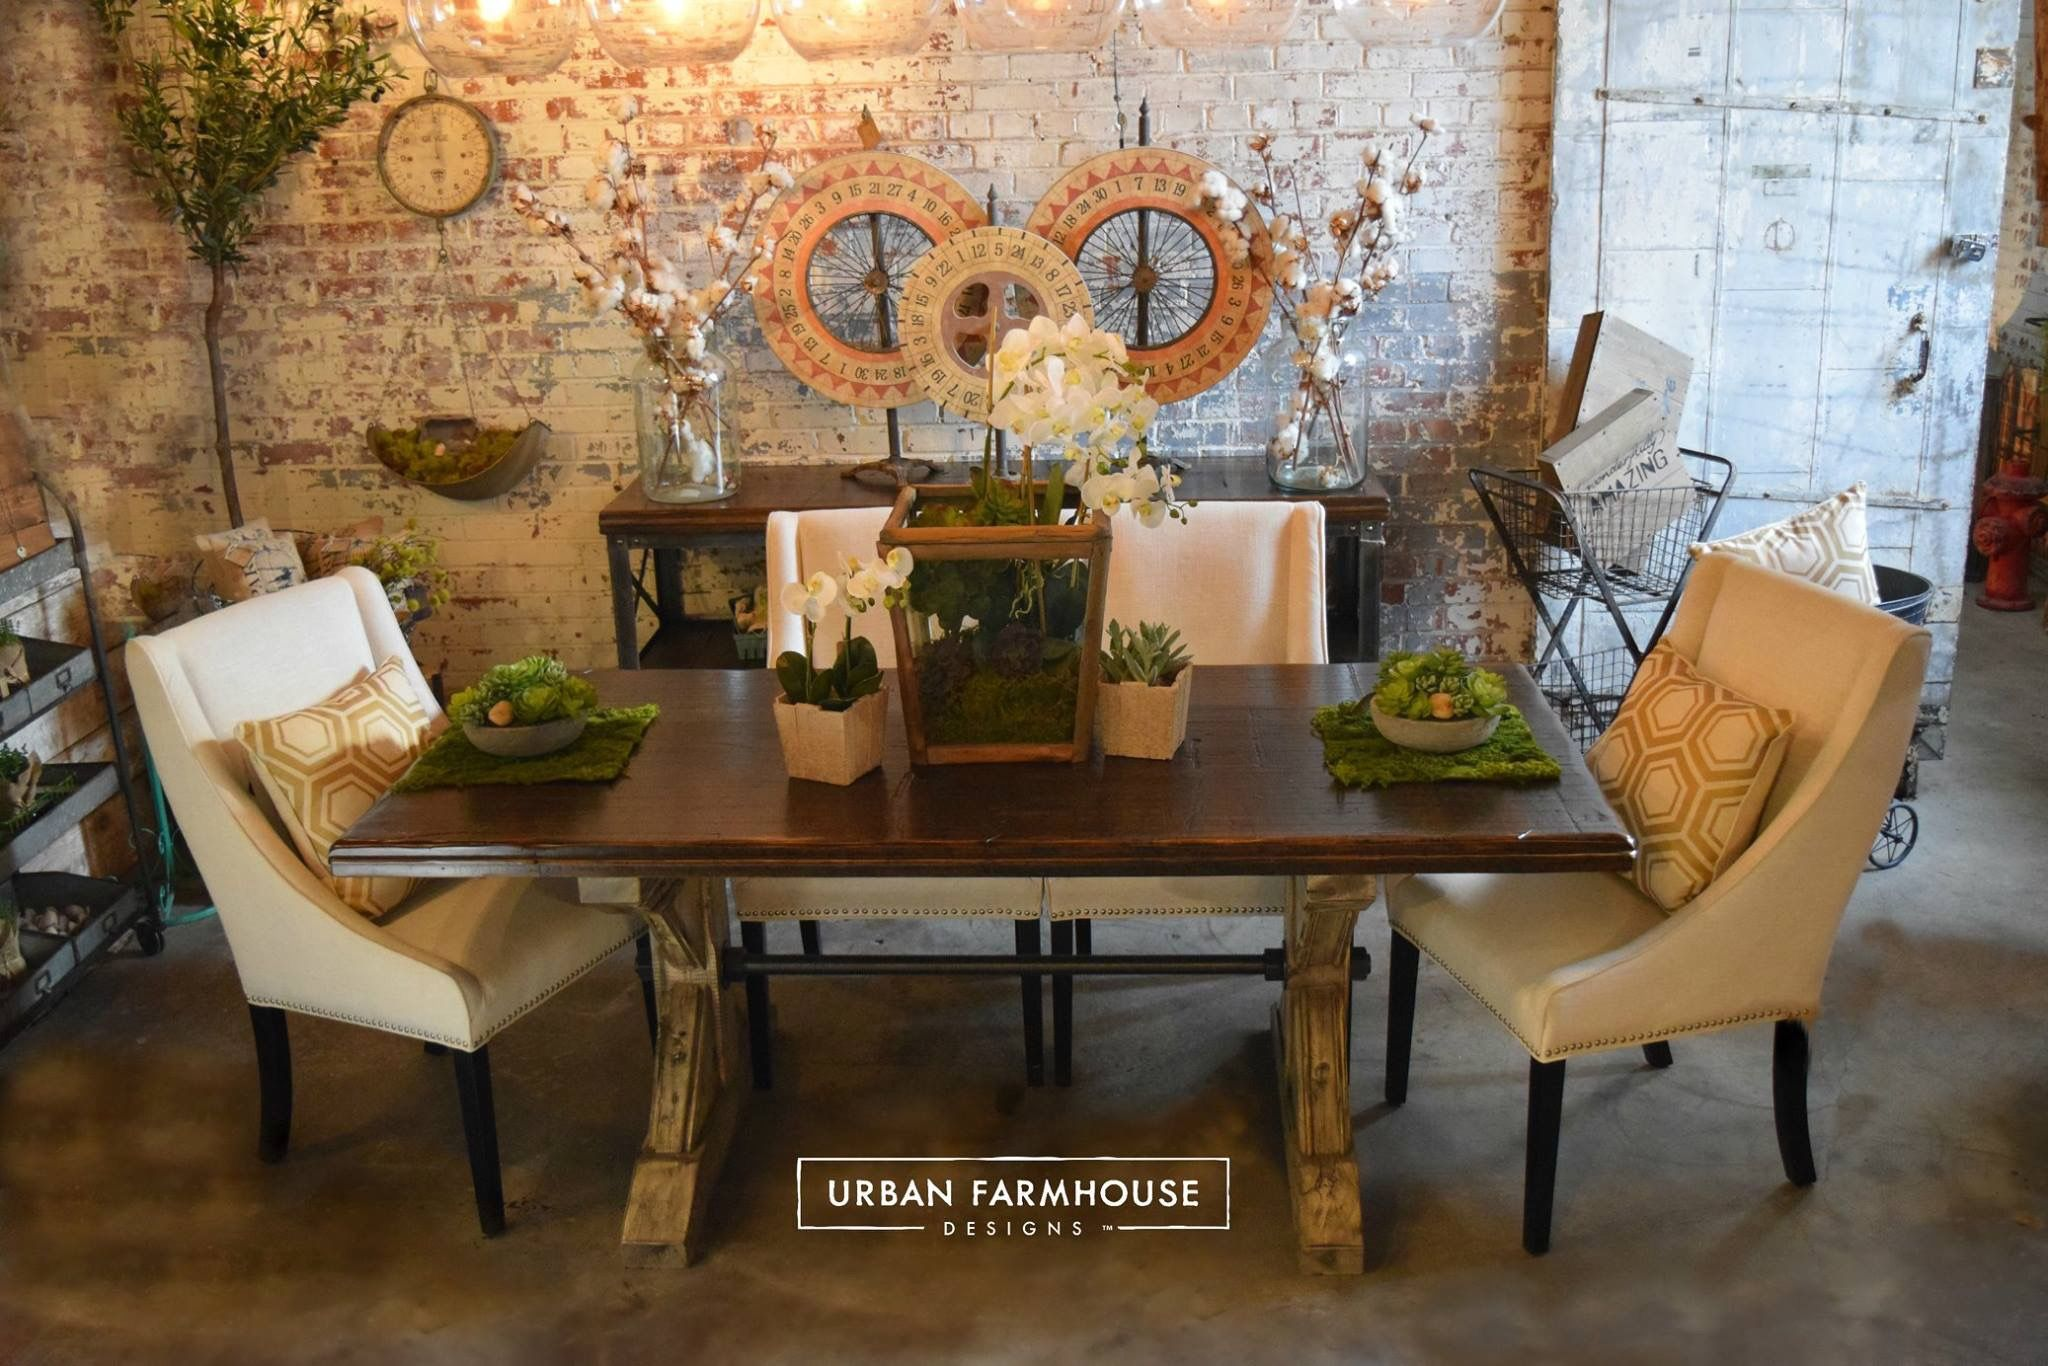 Urban Farmhouse Whitewash Brick Walls Dining Table Rooms Bricks Room Wall Dinning Set